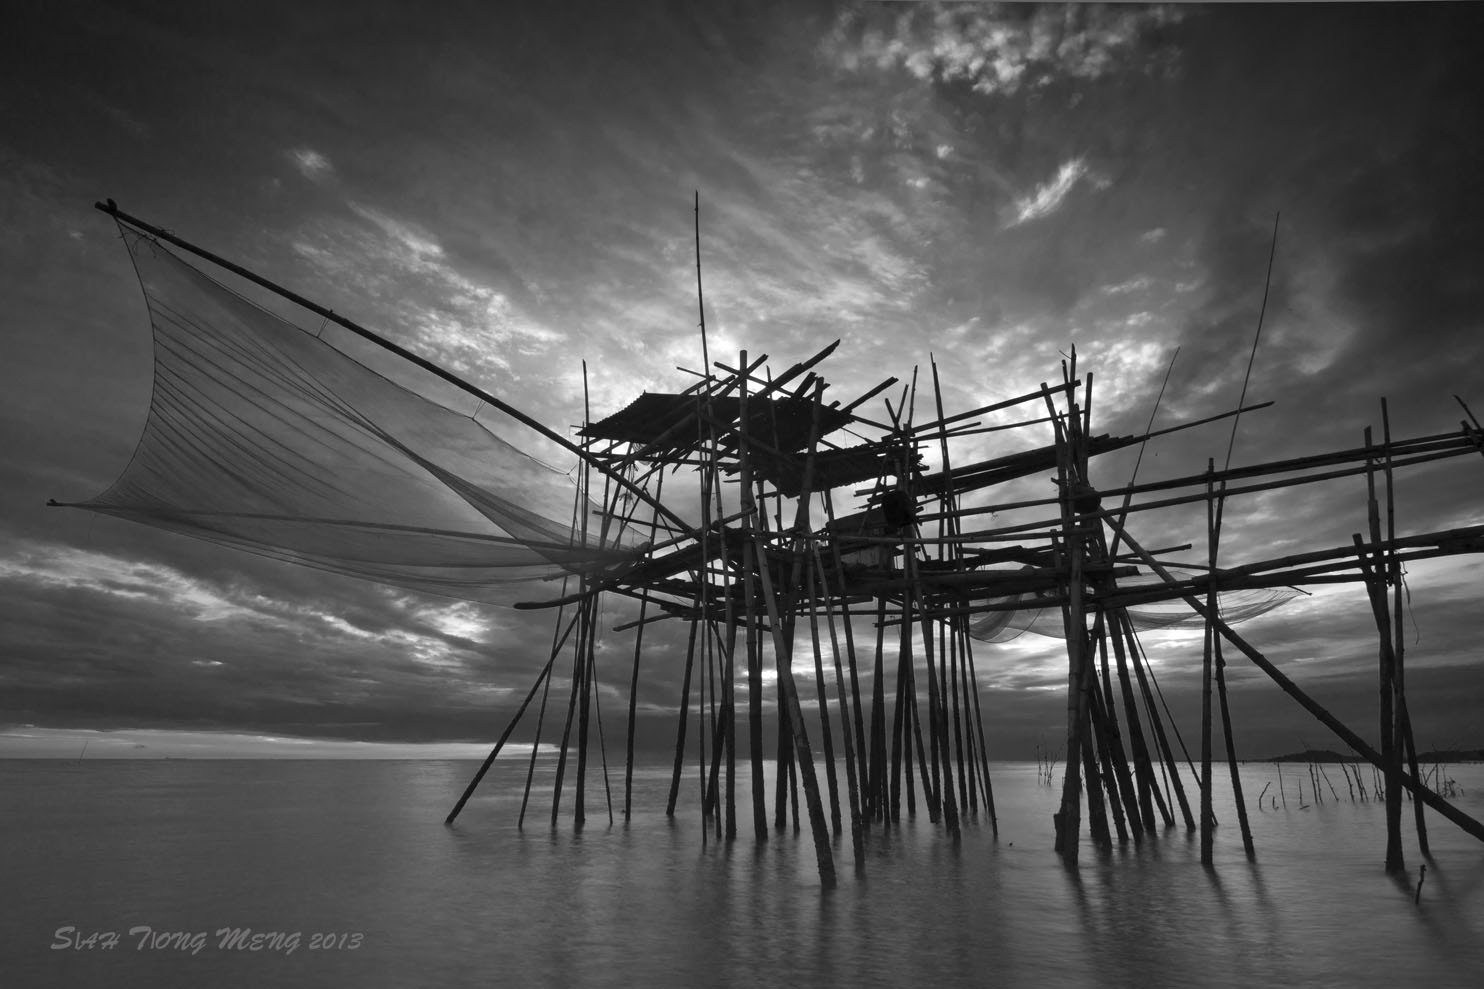 Photograph 围篱 by SIAH TIONG MENG on 500px